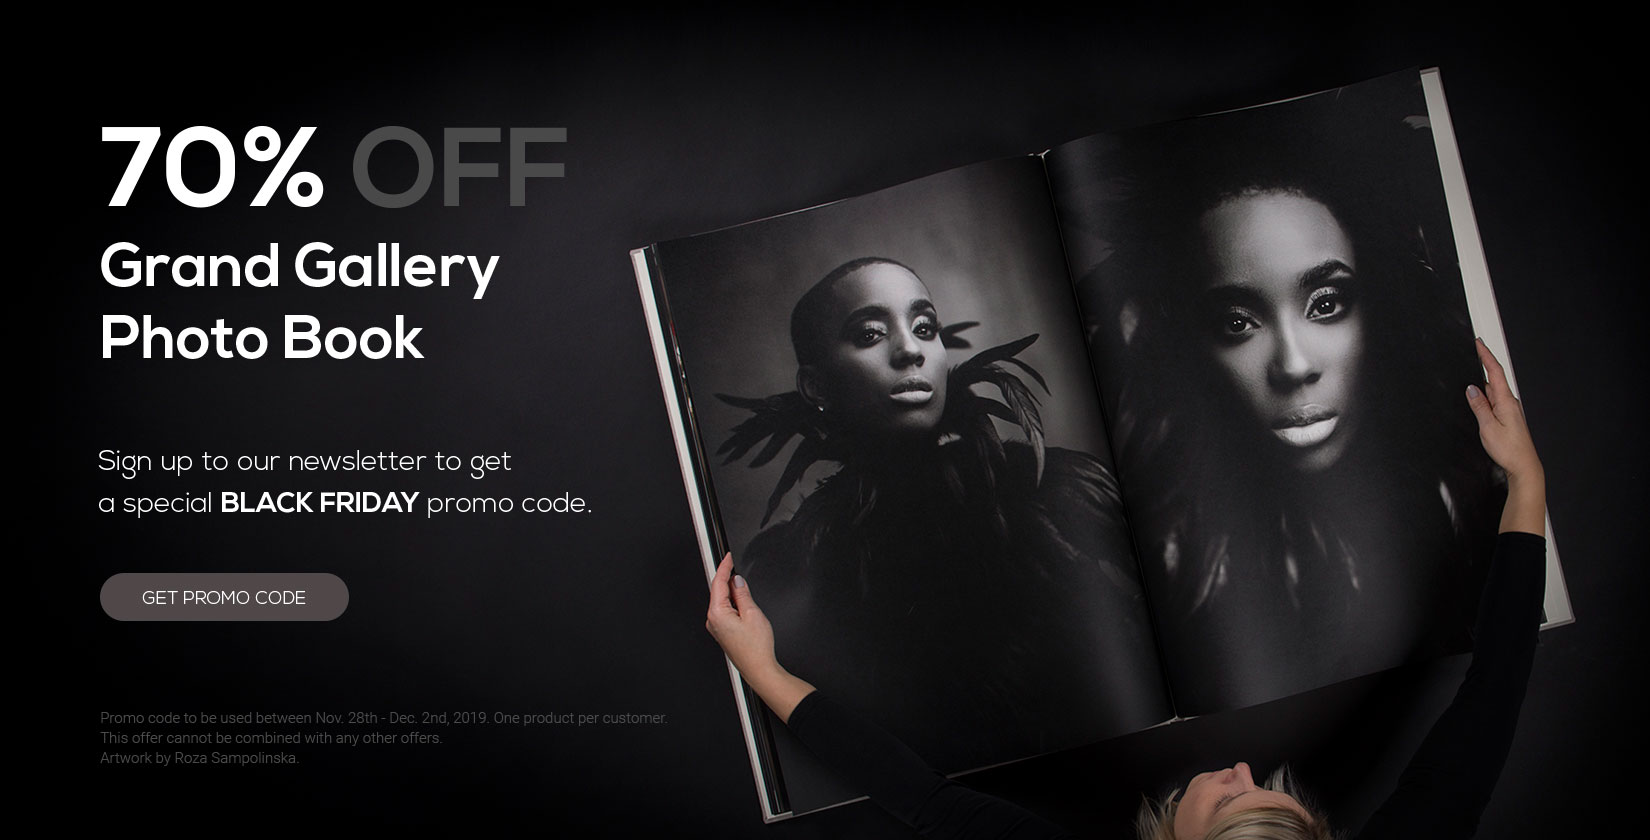 Grand Gallery Photo Book Black Friday promo nPhoto